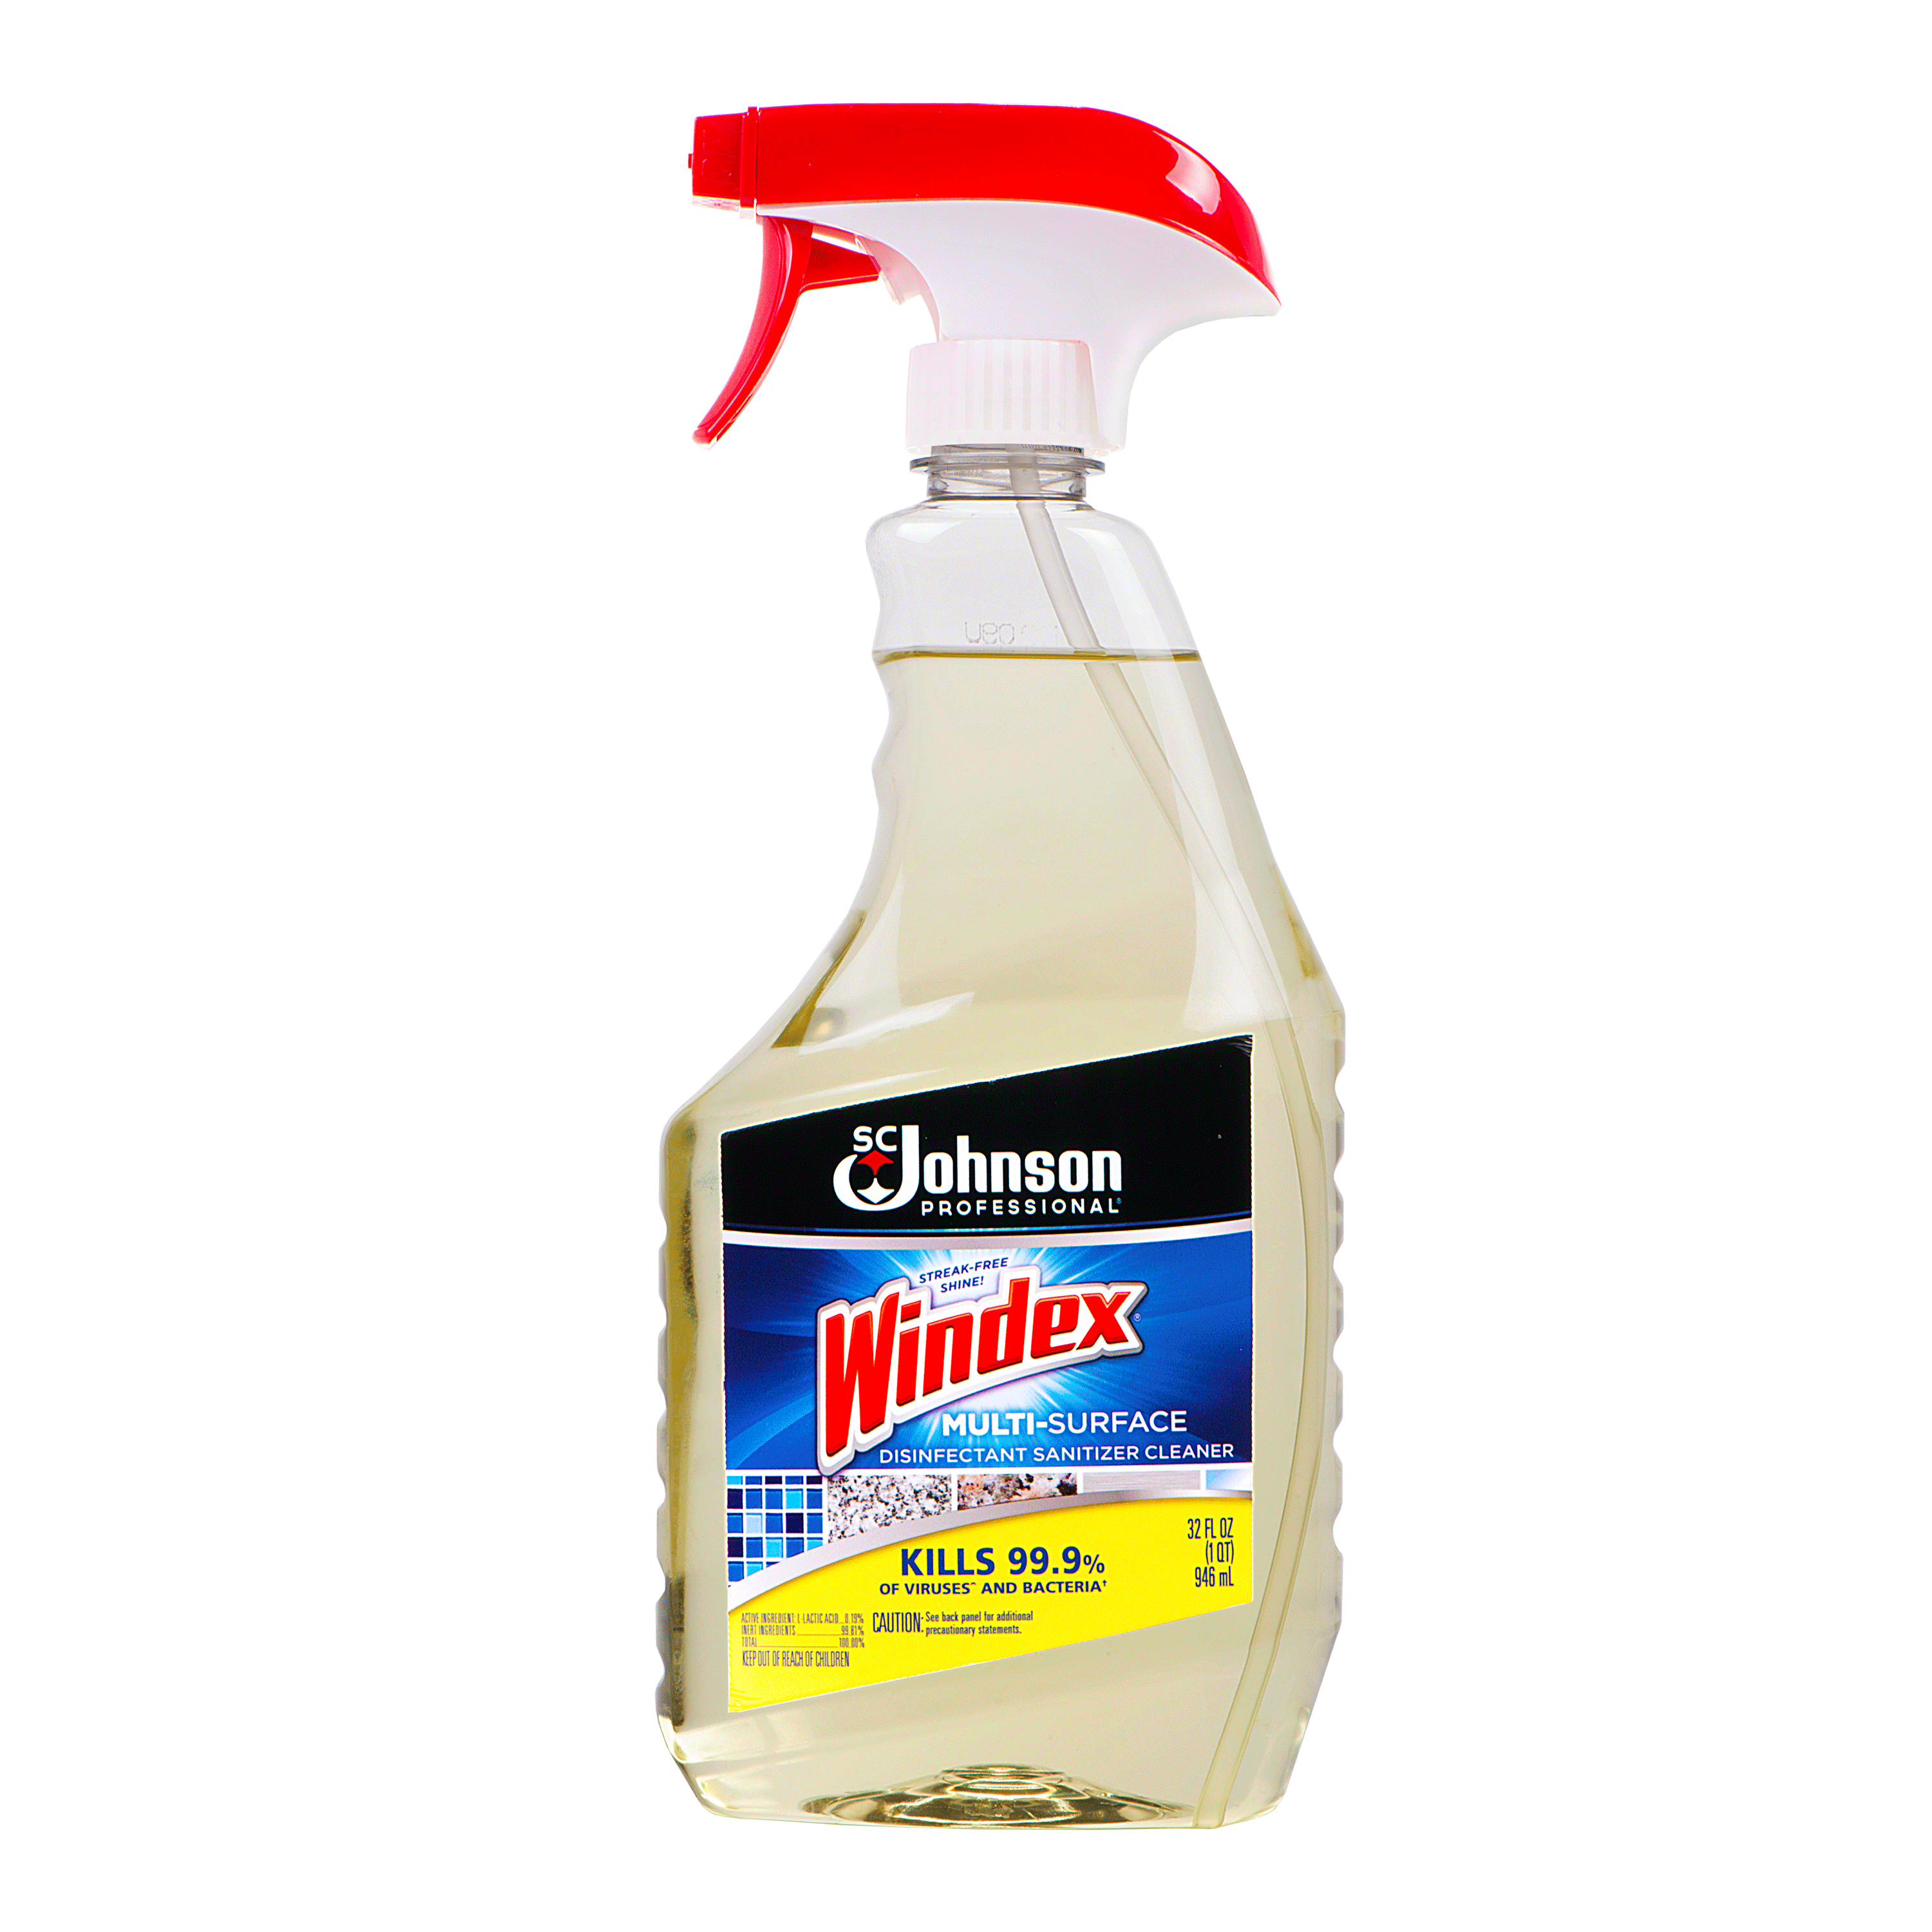 Windex 174 Multi Surface Disinfectant Cleaners Sc Johnson